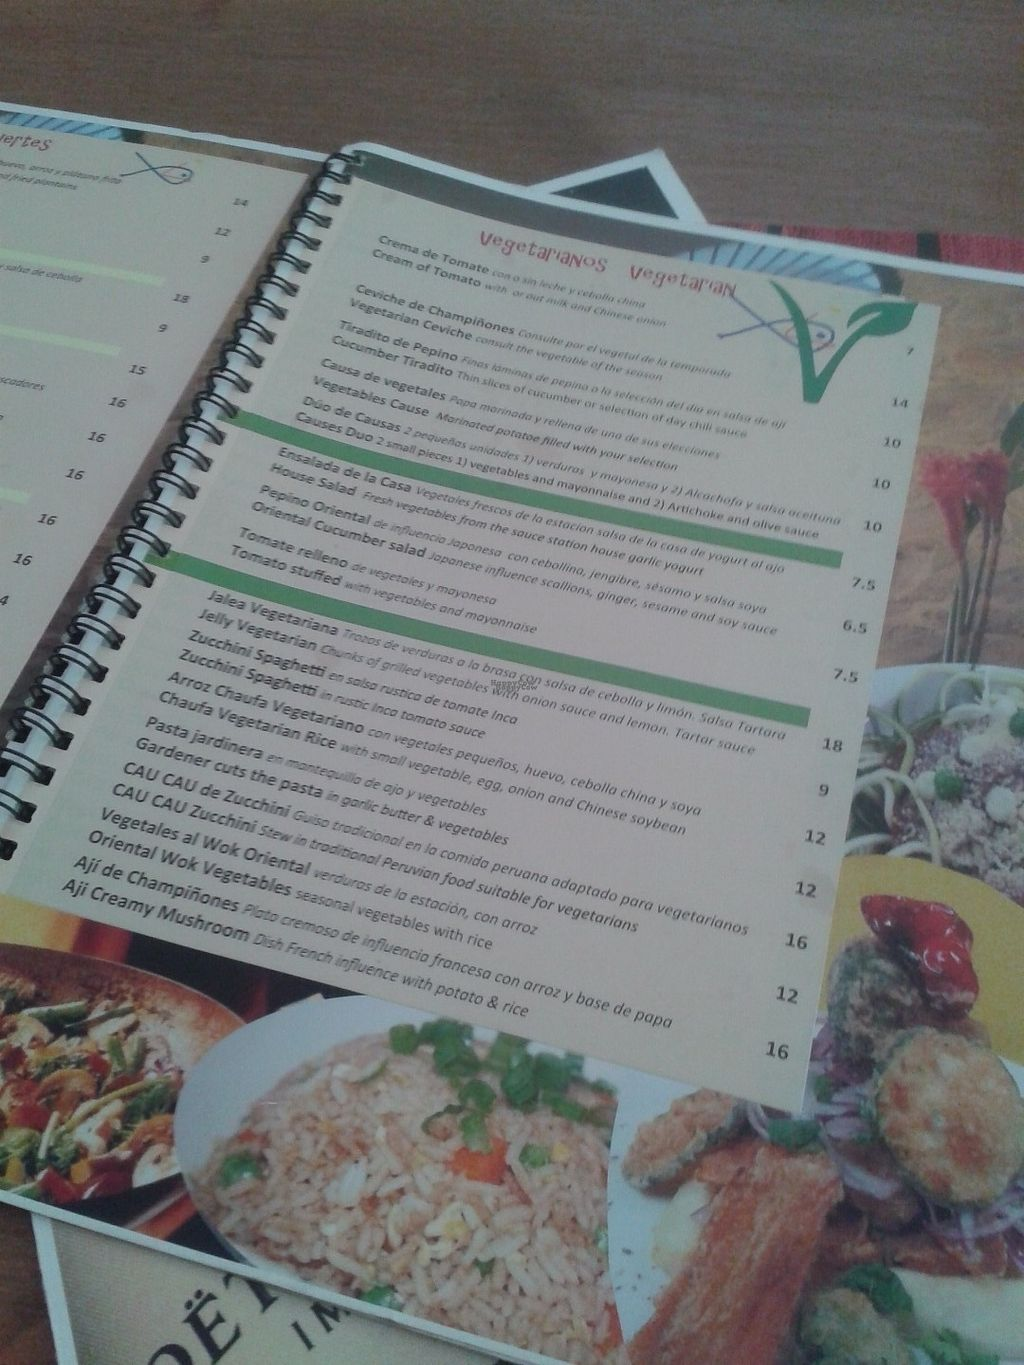 """Photo of CLOSED: El Virrey Kucina Peruana  by <a href=""""/members/profile/Ismarix"""">Ismarix</a> <br/>Veg options in the menu <br/> October 24, 2016  - <a href='/contact/abuse/image/81551/183999'>Report</a>"""